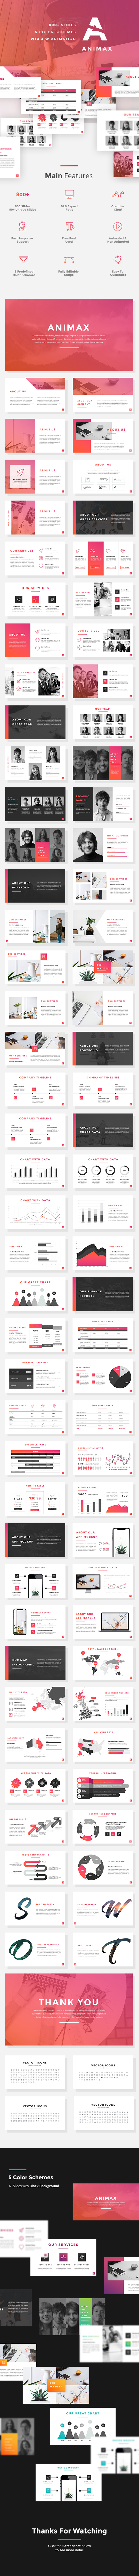 GraphicRiver Animax Finance and Marketing Google Slides Template 21160071